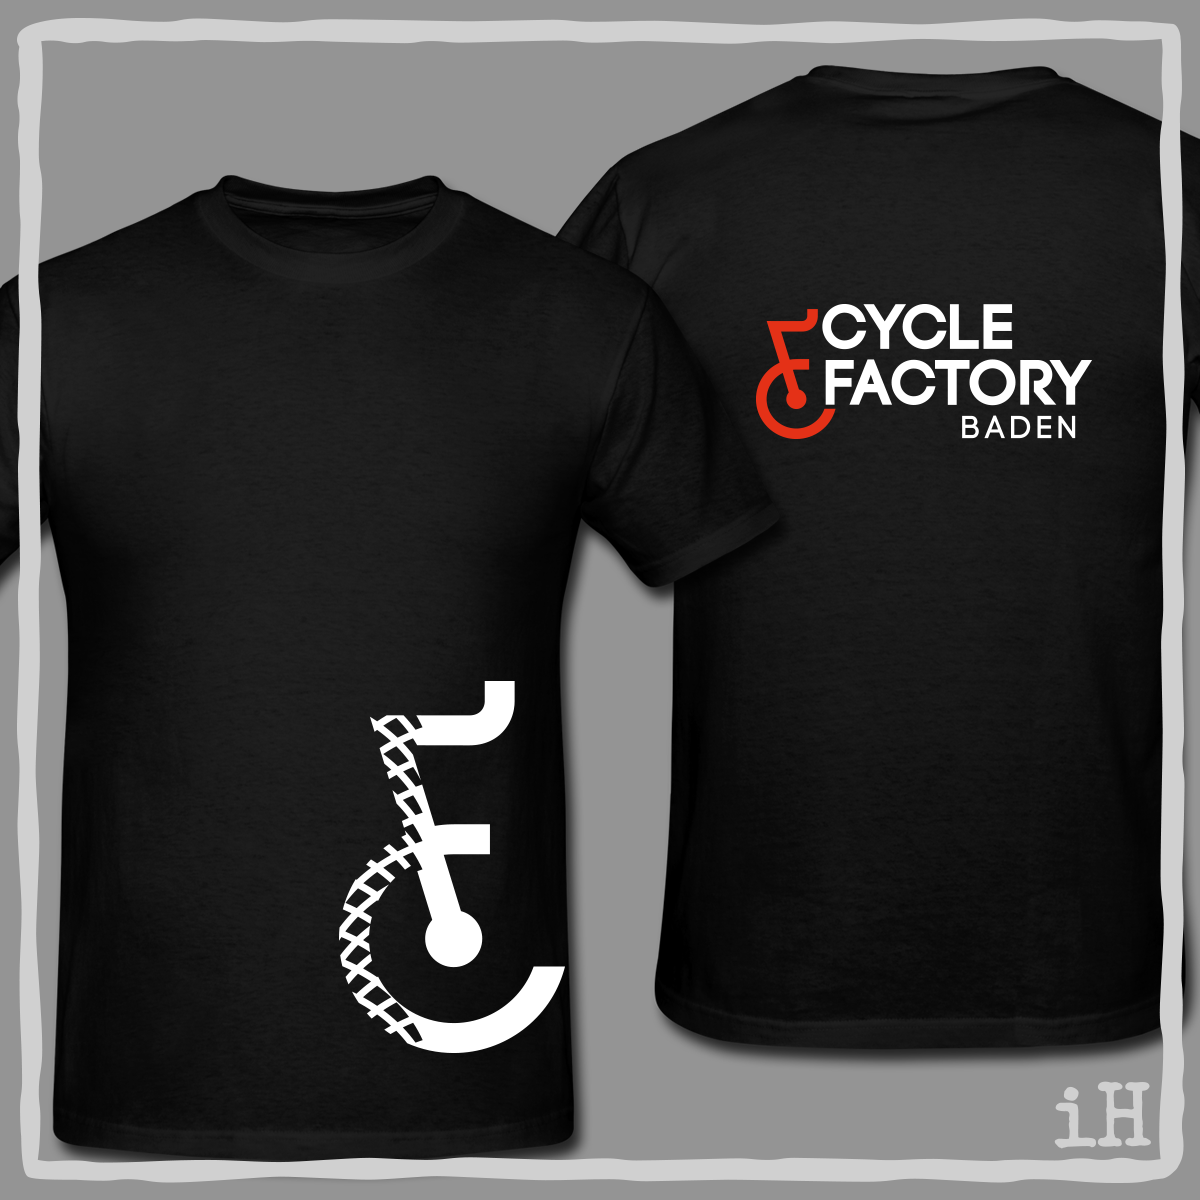 Cycle Factory